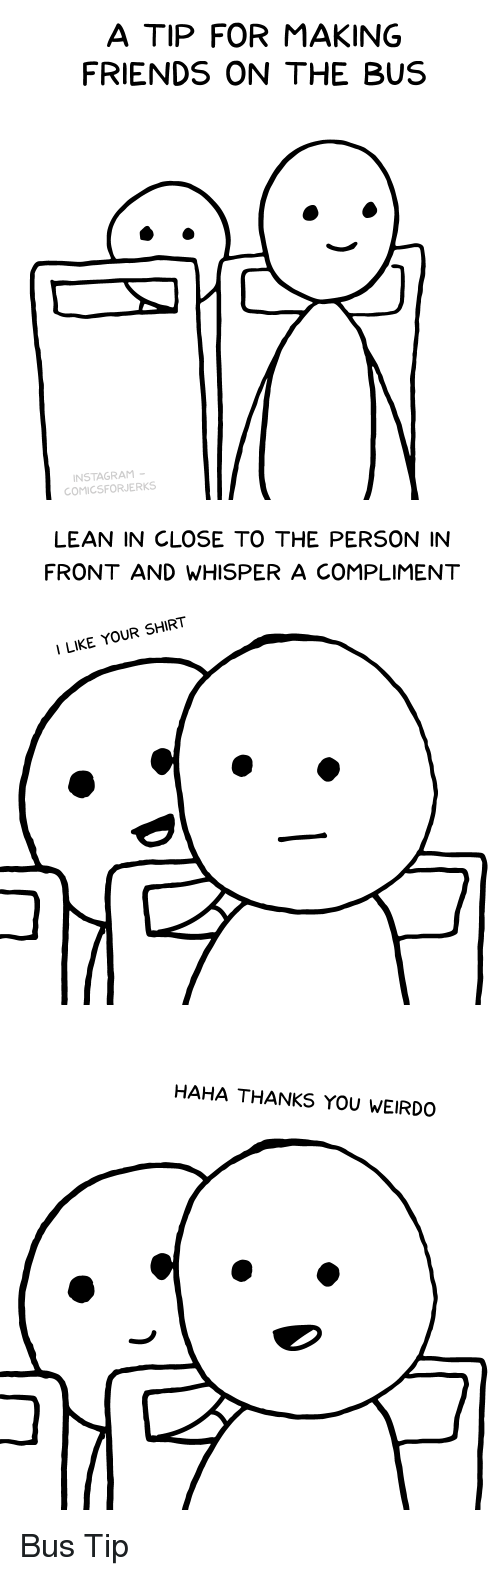 Friends, Funny, and Lean: A TIP FOR MAKING  FRIENDS ON THE BUS  NSTAGRAM  COMICSFORJERKS   LEAN IN CLOSE TO THE PERSON IN  FRONT AND WHISPER A COMPLIMENT  ILIKE YOUR SHIRT   HAHA THANKS YOU WEIRDO Bus Tip